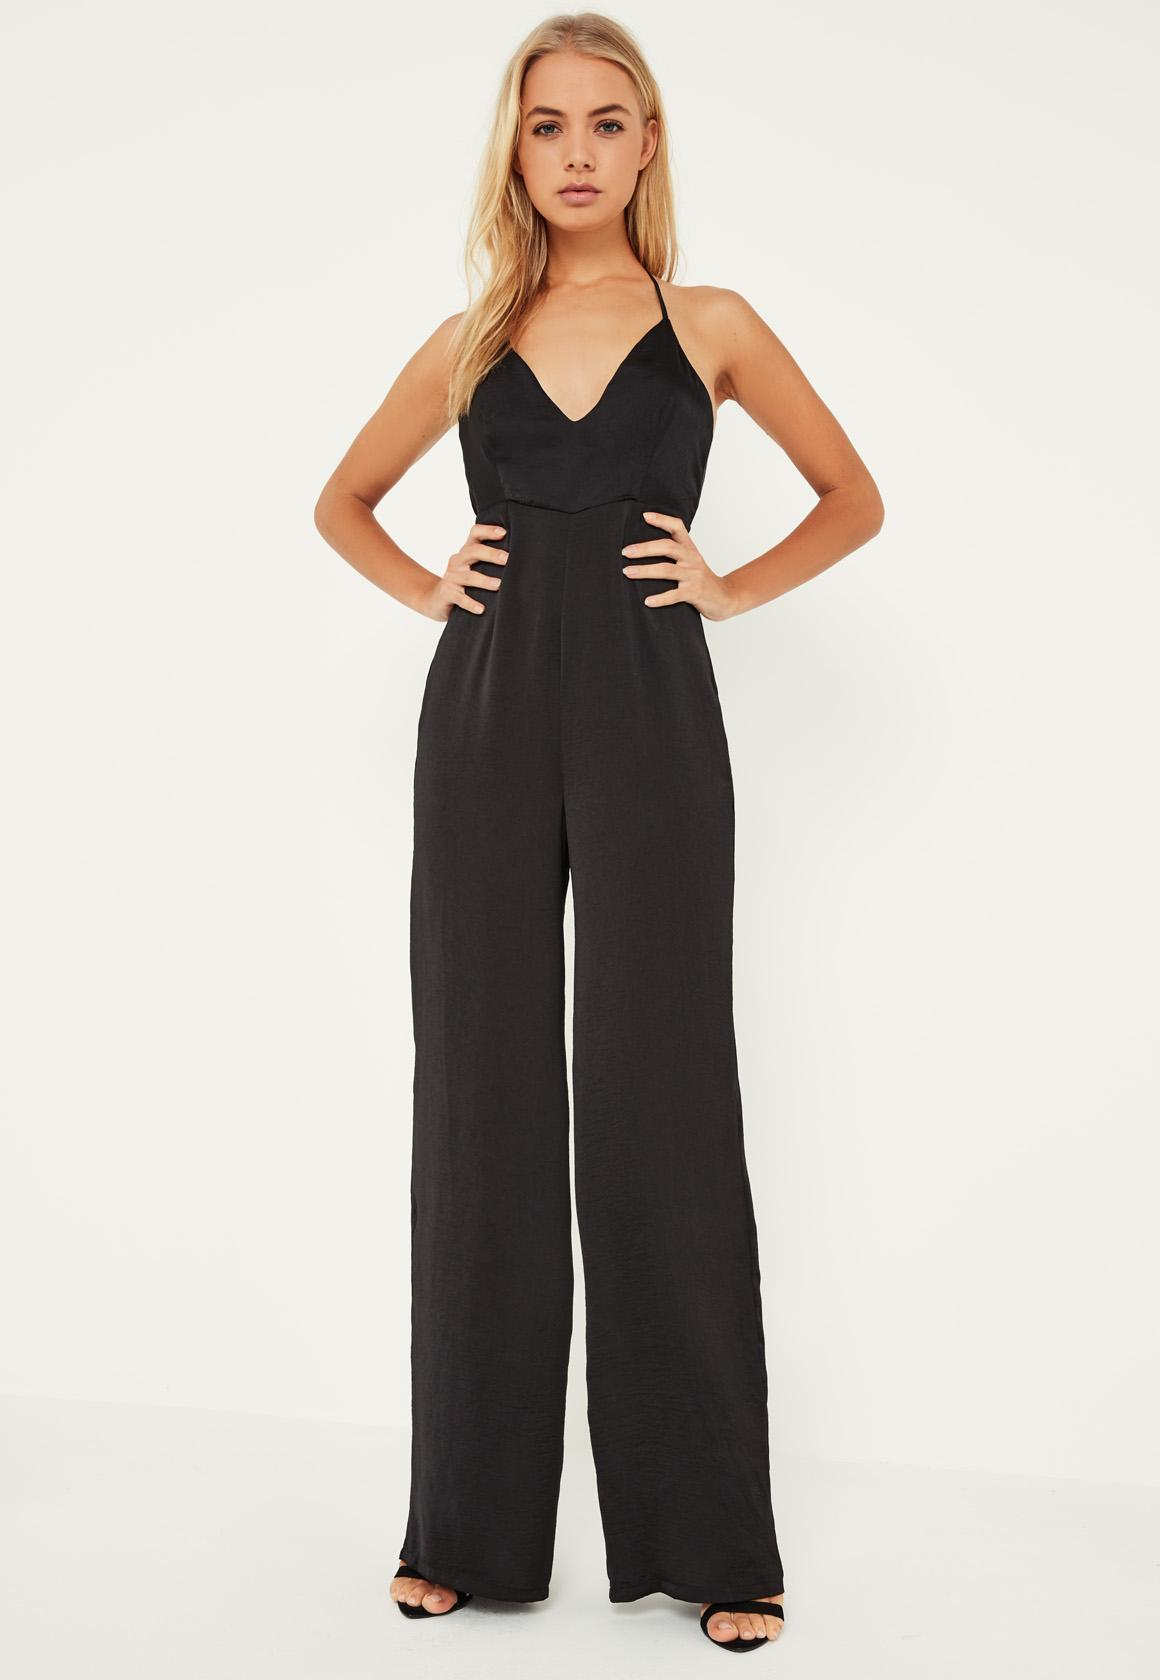 Black Silky Plunge Wide Leg Jumpsuit - Missguided